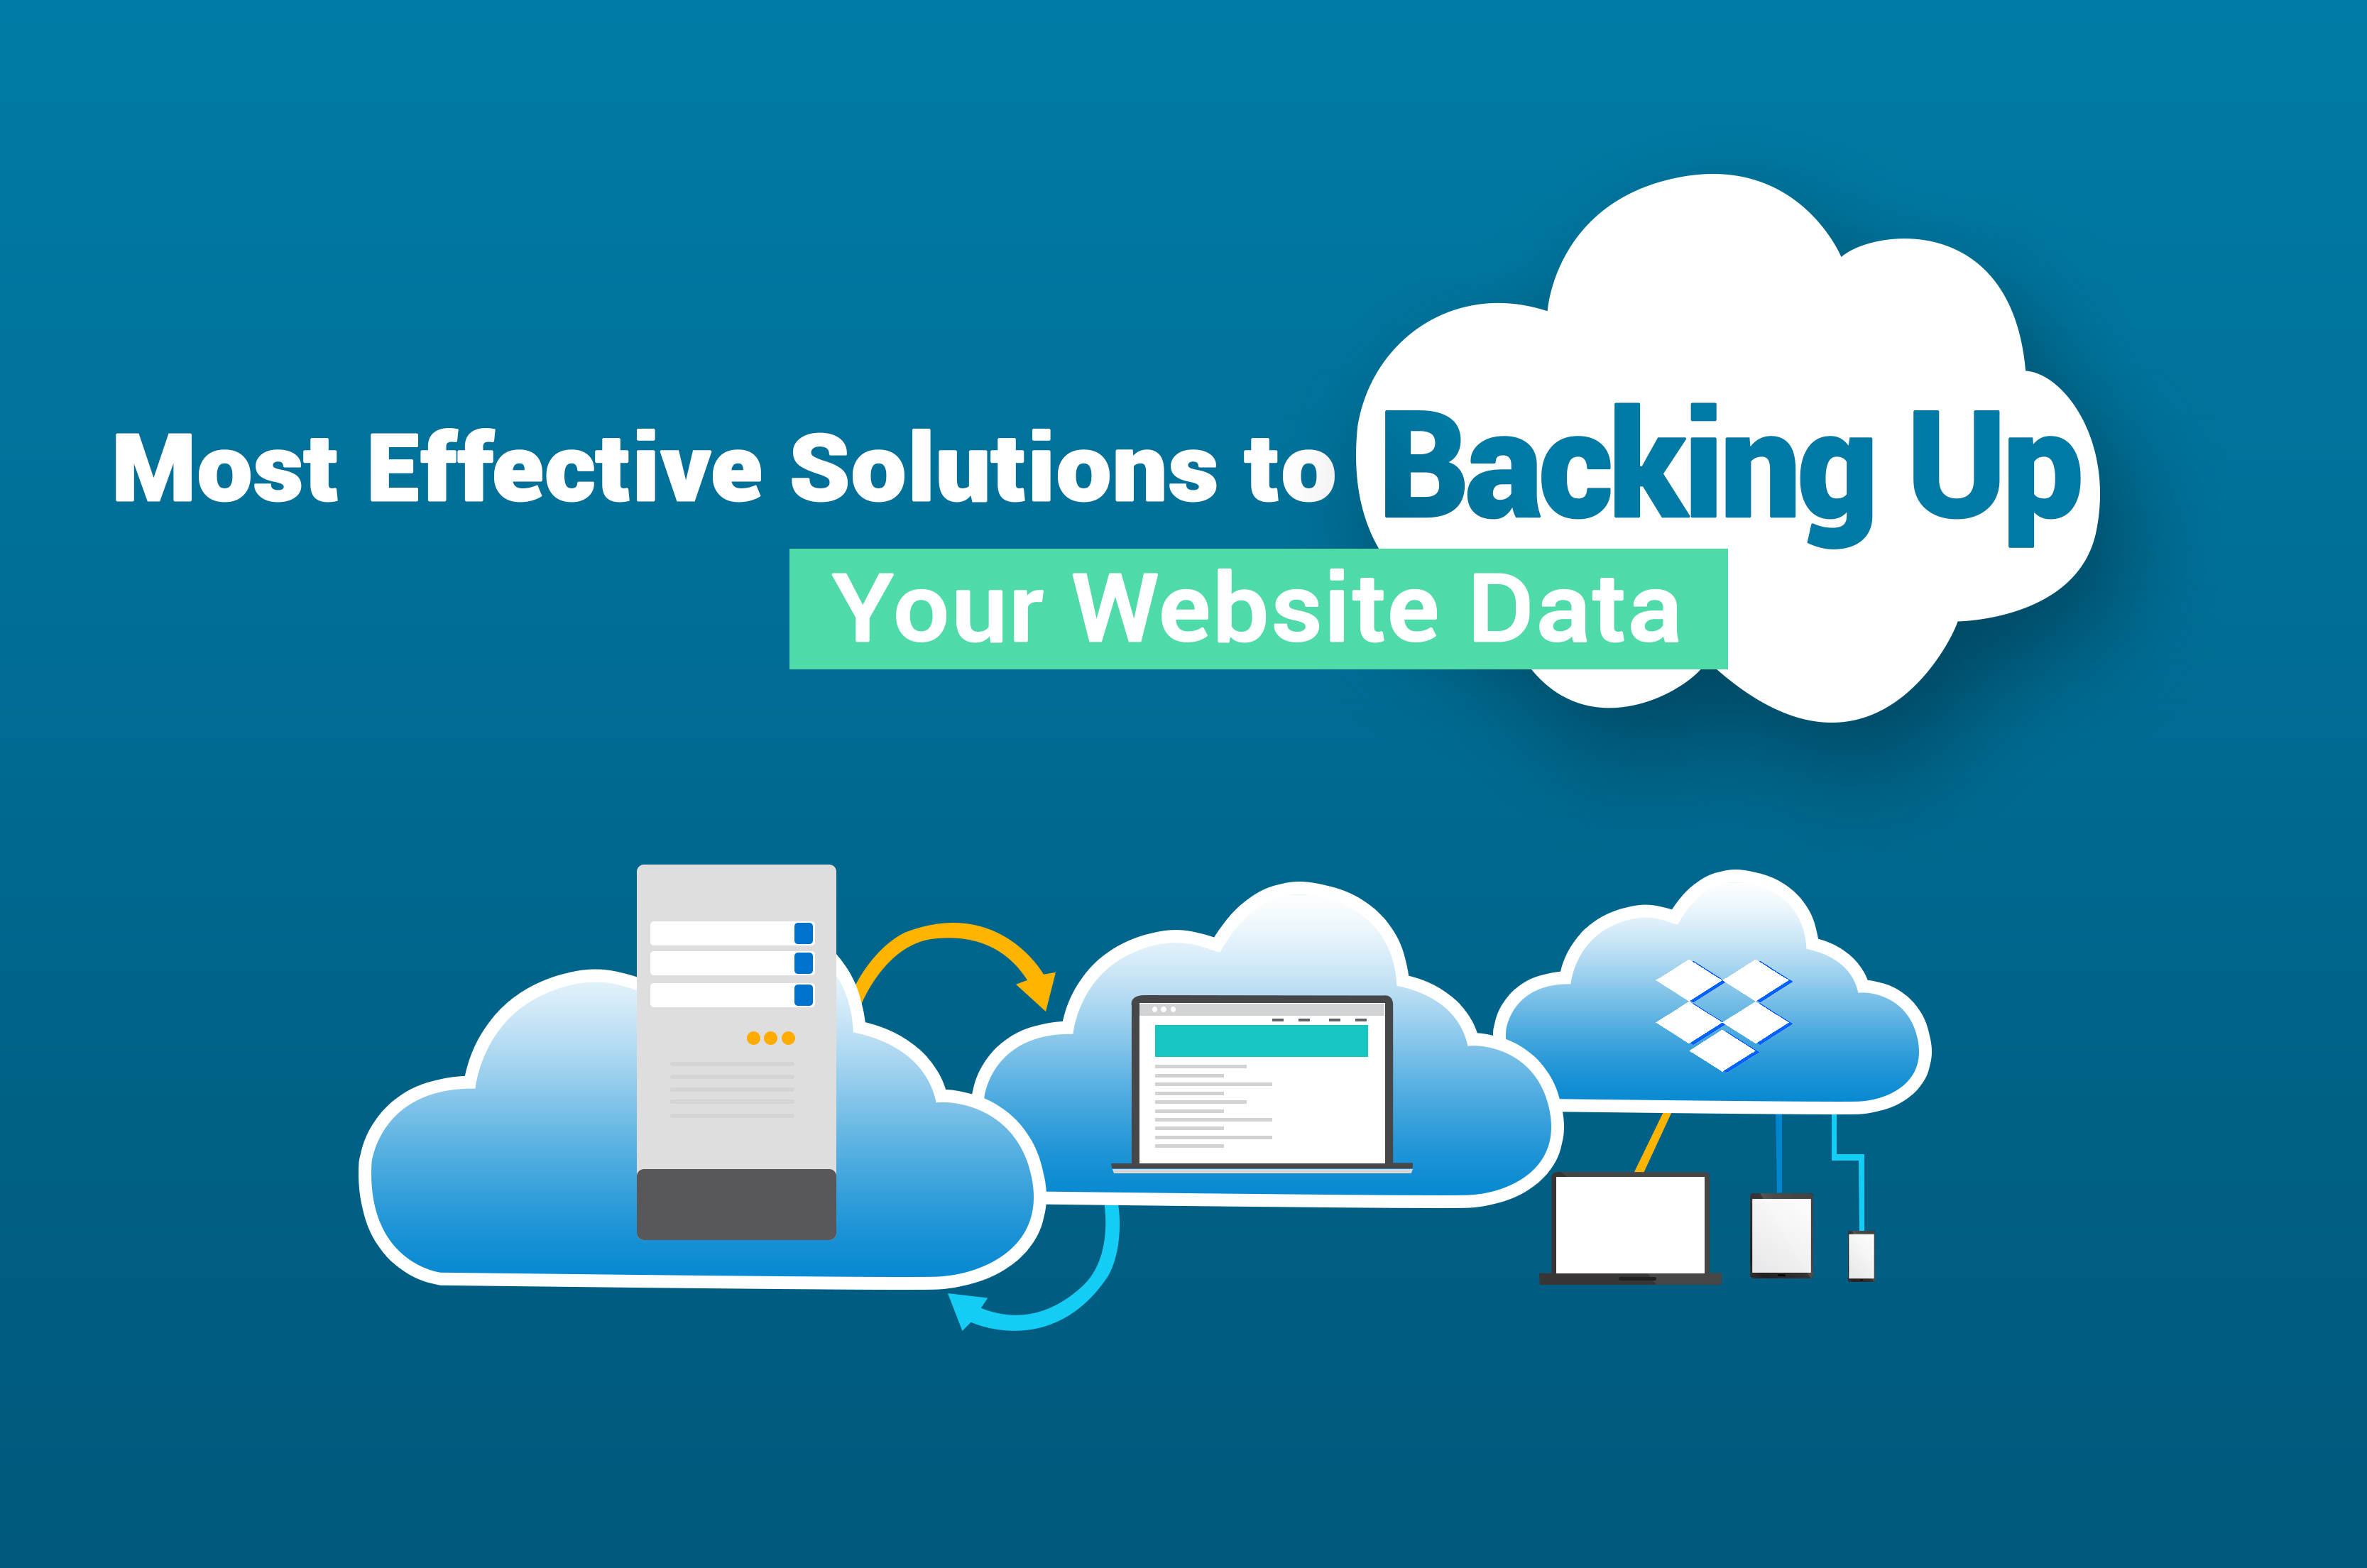 Backing Up Your Website Data